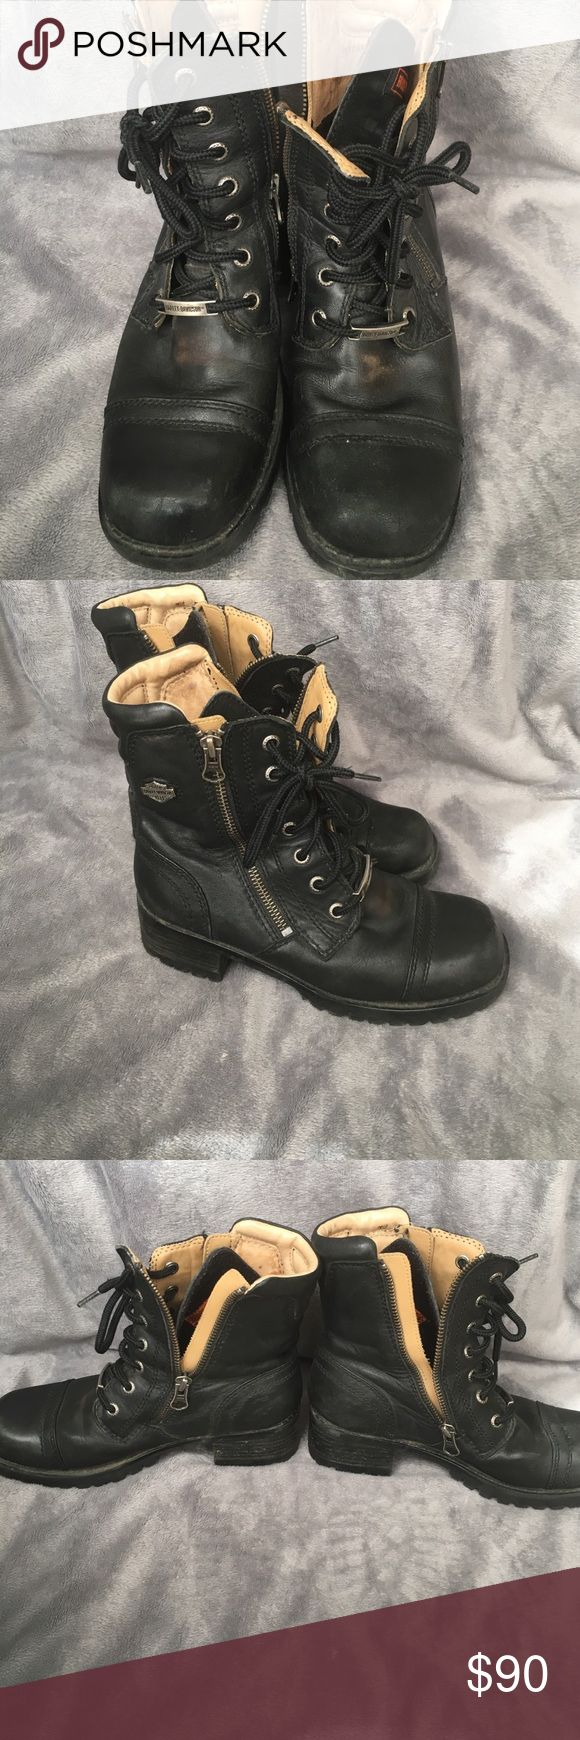 Harley Davidson Side Zip 90s Biker Boots Amazing vintage Biker boots in excellent condition. Signs of wear only create a cooler worn in Biker vibe. Make me an offer :) Harley-Davidson Shoes Combat & Moto Boots